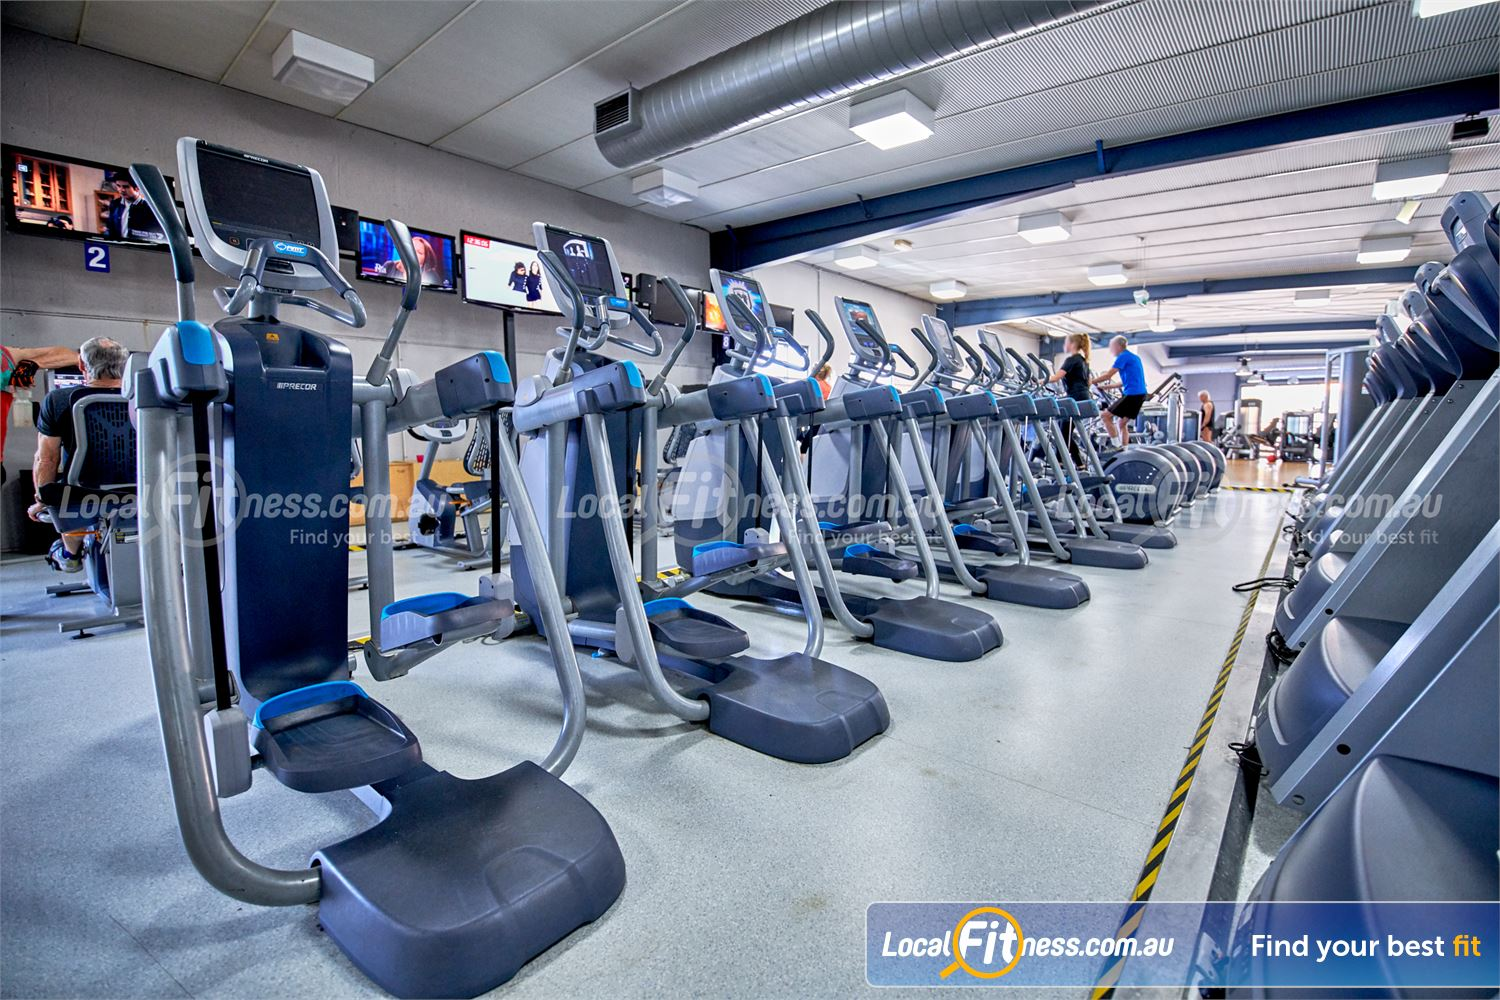 Fitness First Bayside Near Cheltenham Multiple Precor Adaptive Motion Trainer with open stride.<br />